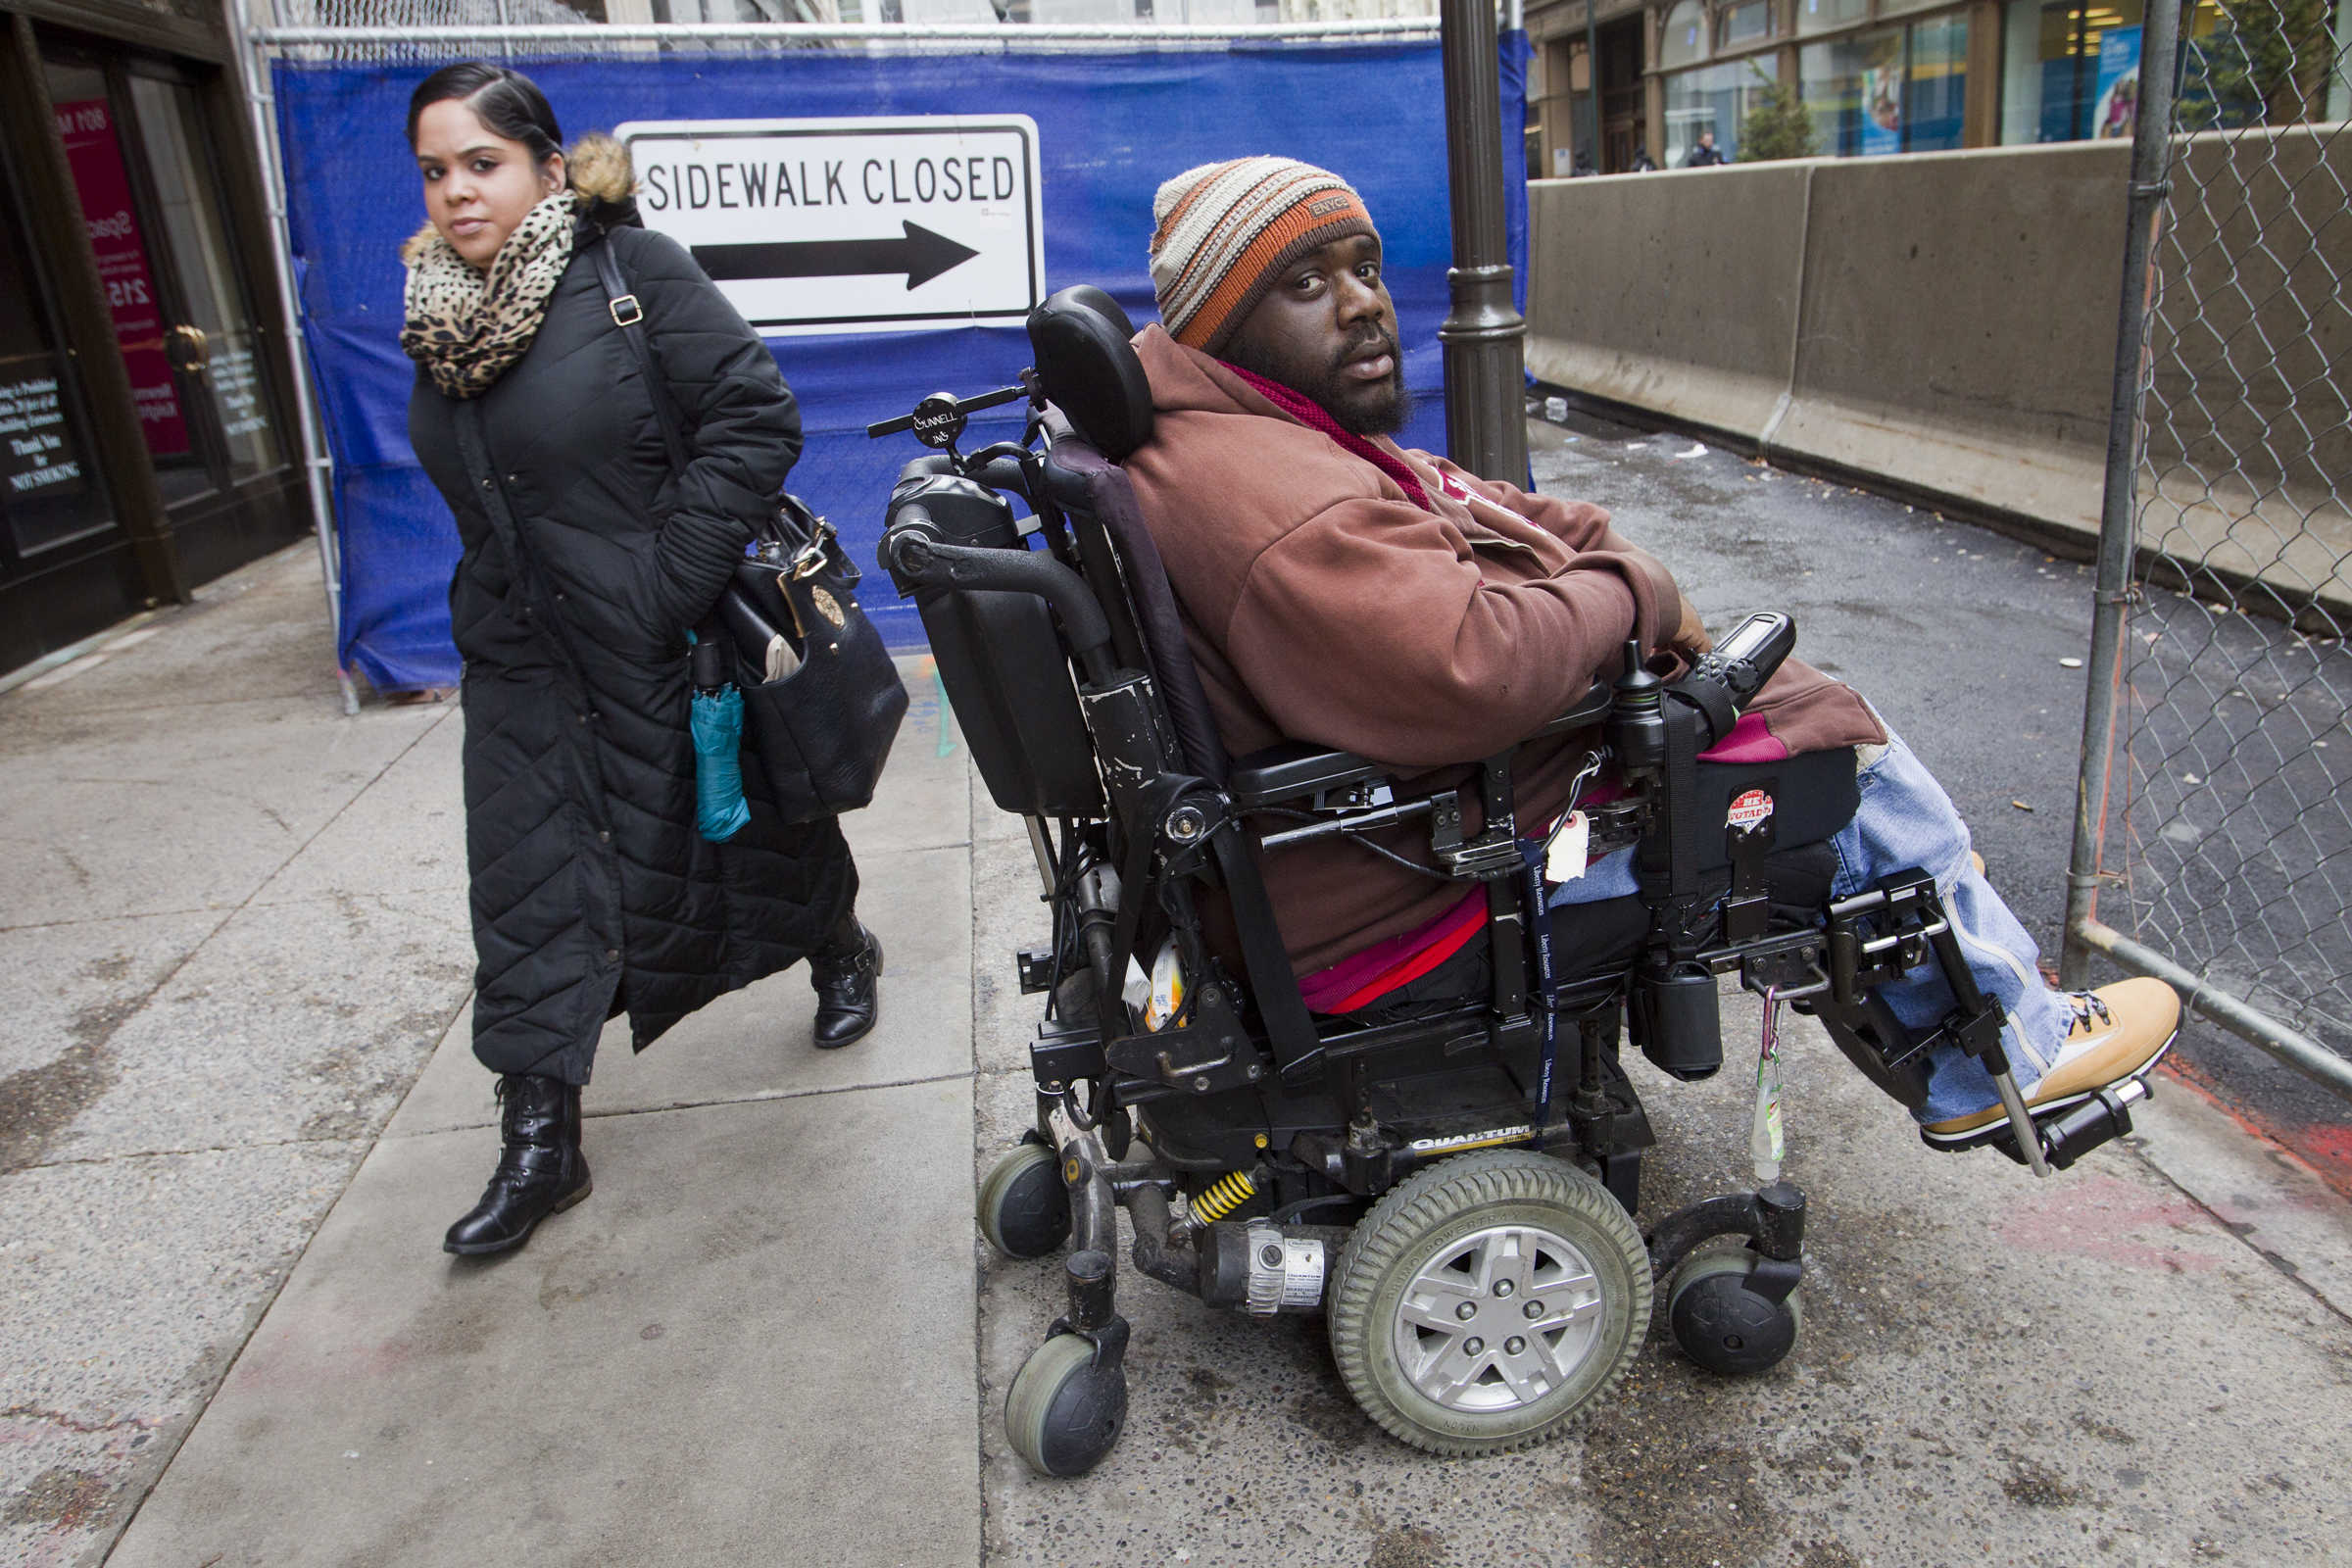 Zachary Lewis of Philadelphia is a paraplegic. He was struck by a car near Island Ave and Lindberg Blvd in southwest Philadelphia. Lewis is independent and get around on his own. Photograph taken on Friday afternoon March 10, 2016 along 8th just north of Market St.  ALEJANDRO A. ALVAREZ / Staff Photographer